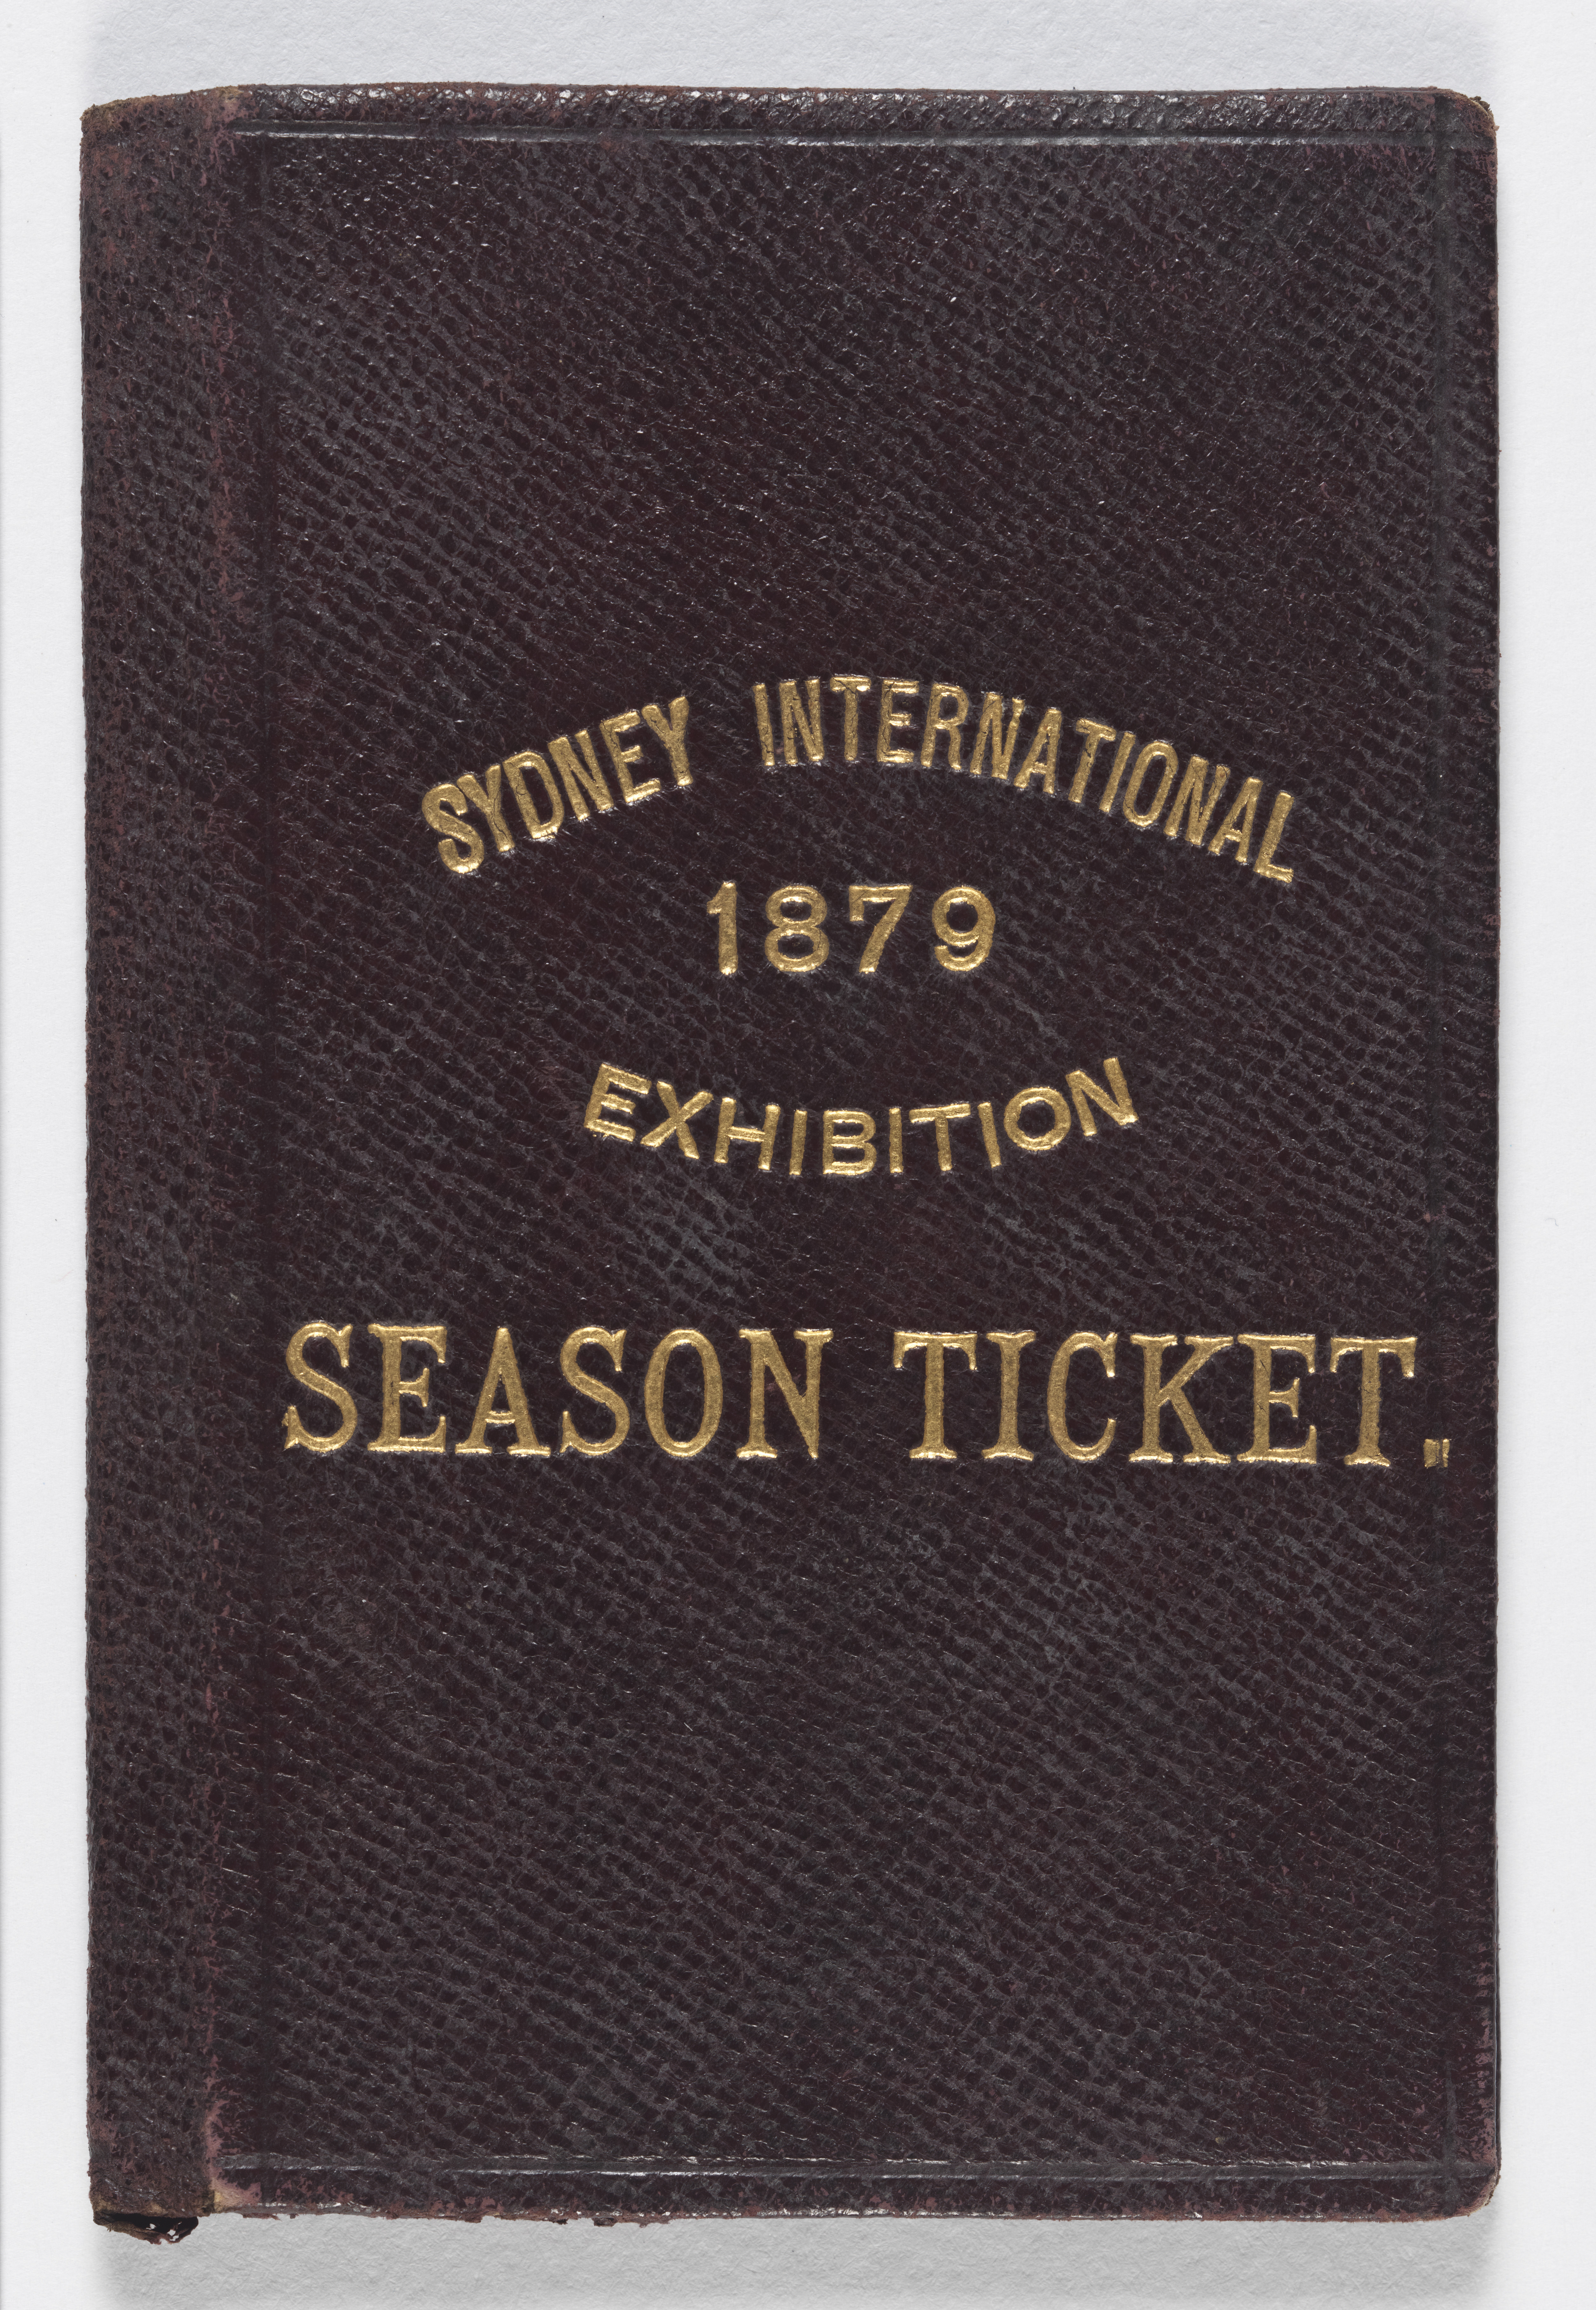 Wallet for season ticket issued to Eveline Mary Whiting for the International Exhibition